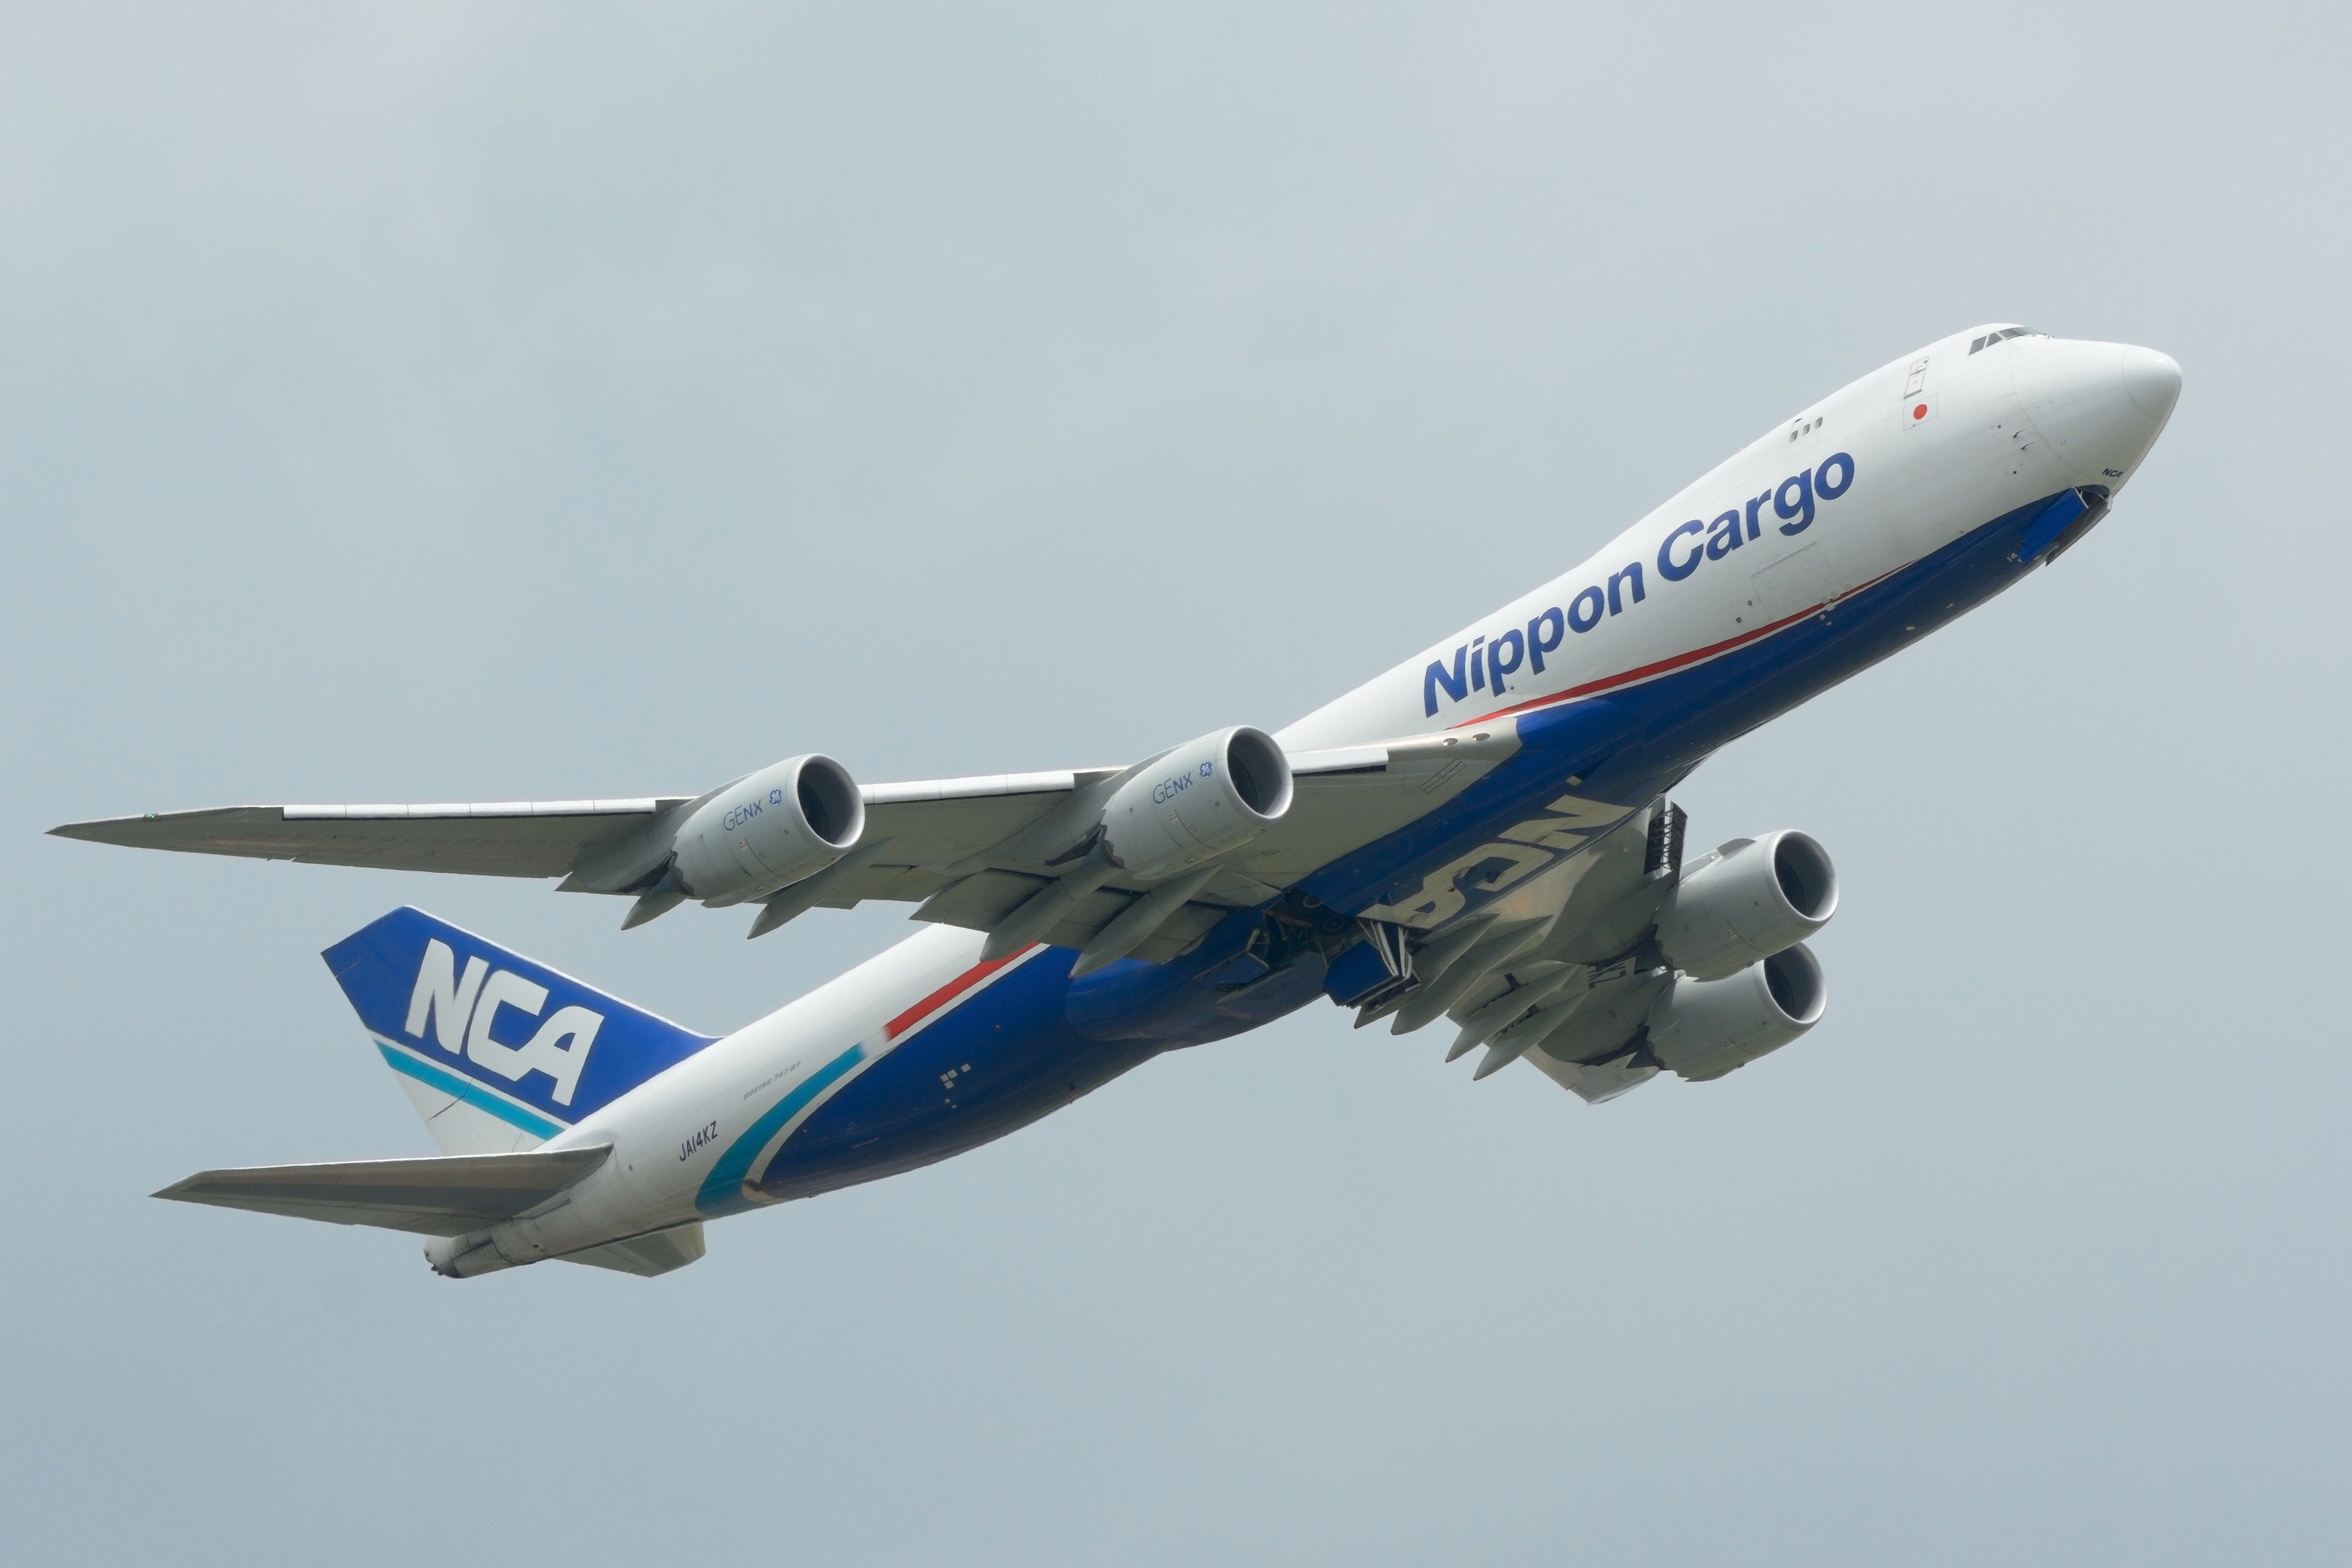 Nippon Cargo Airlines has capped the size of its 7478F